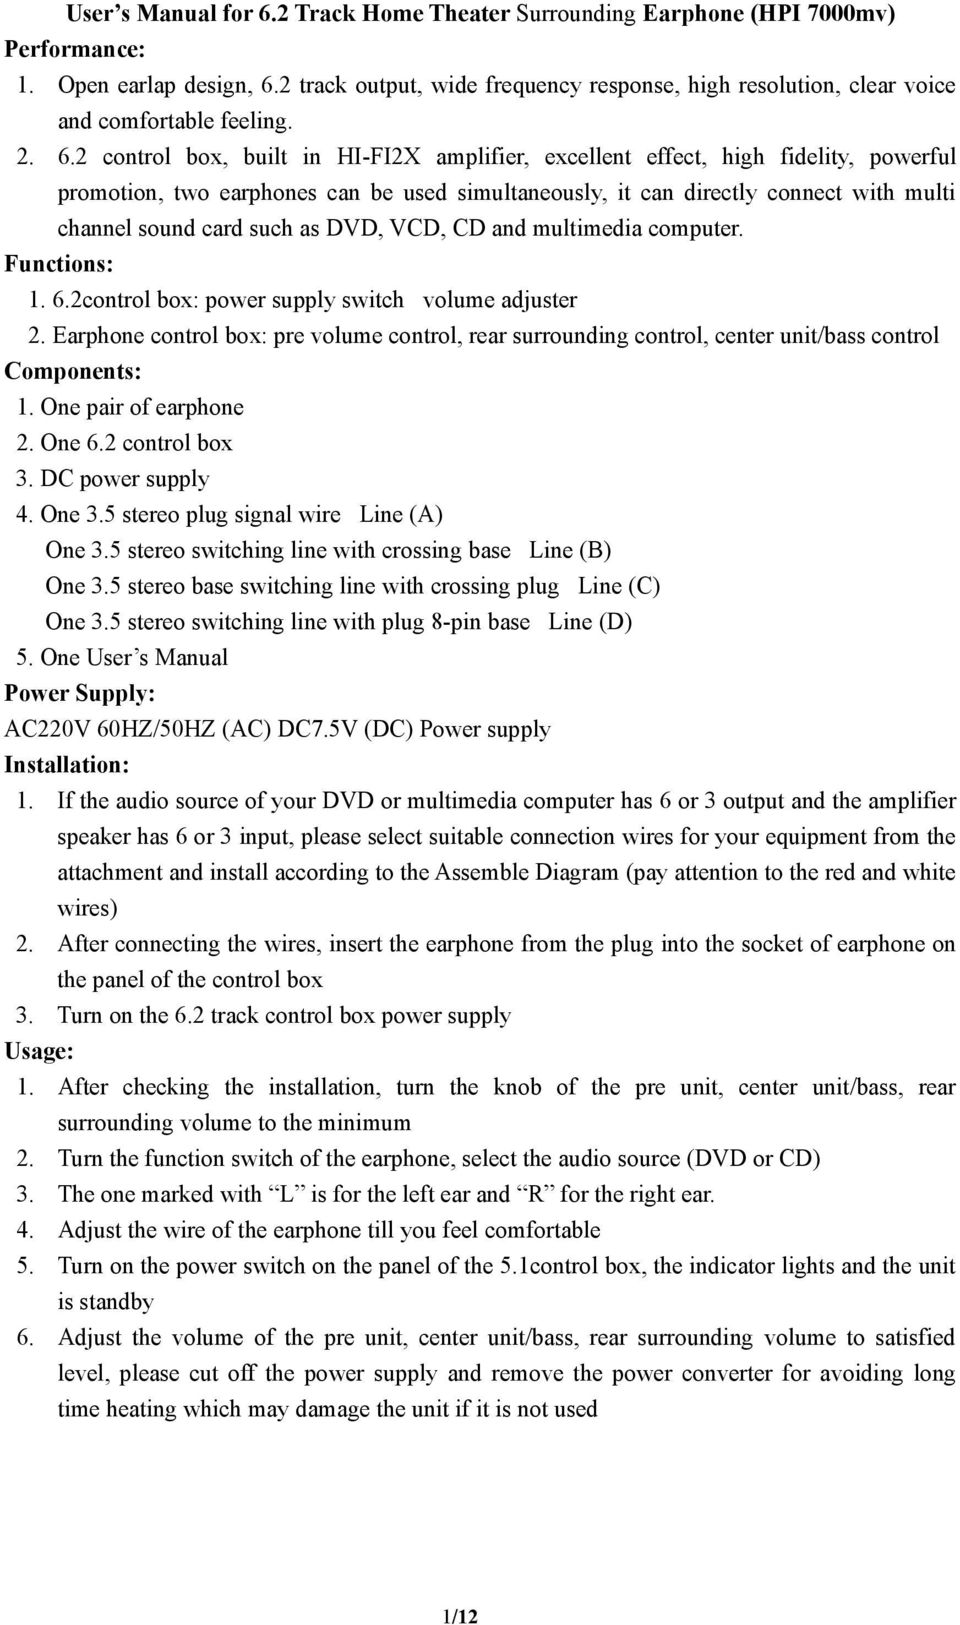 2 control box, built in HI-FI2X amplifier, excellent effect, high fidelity, powerful promotion, two earphones can be used simultaneously, it can directly connect with multi channel sound card such as